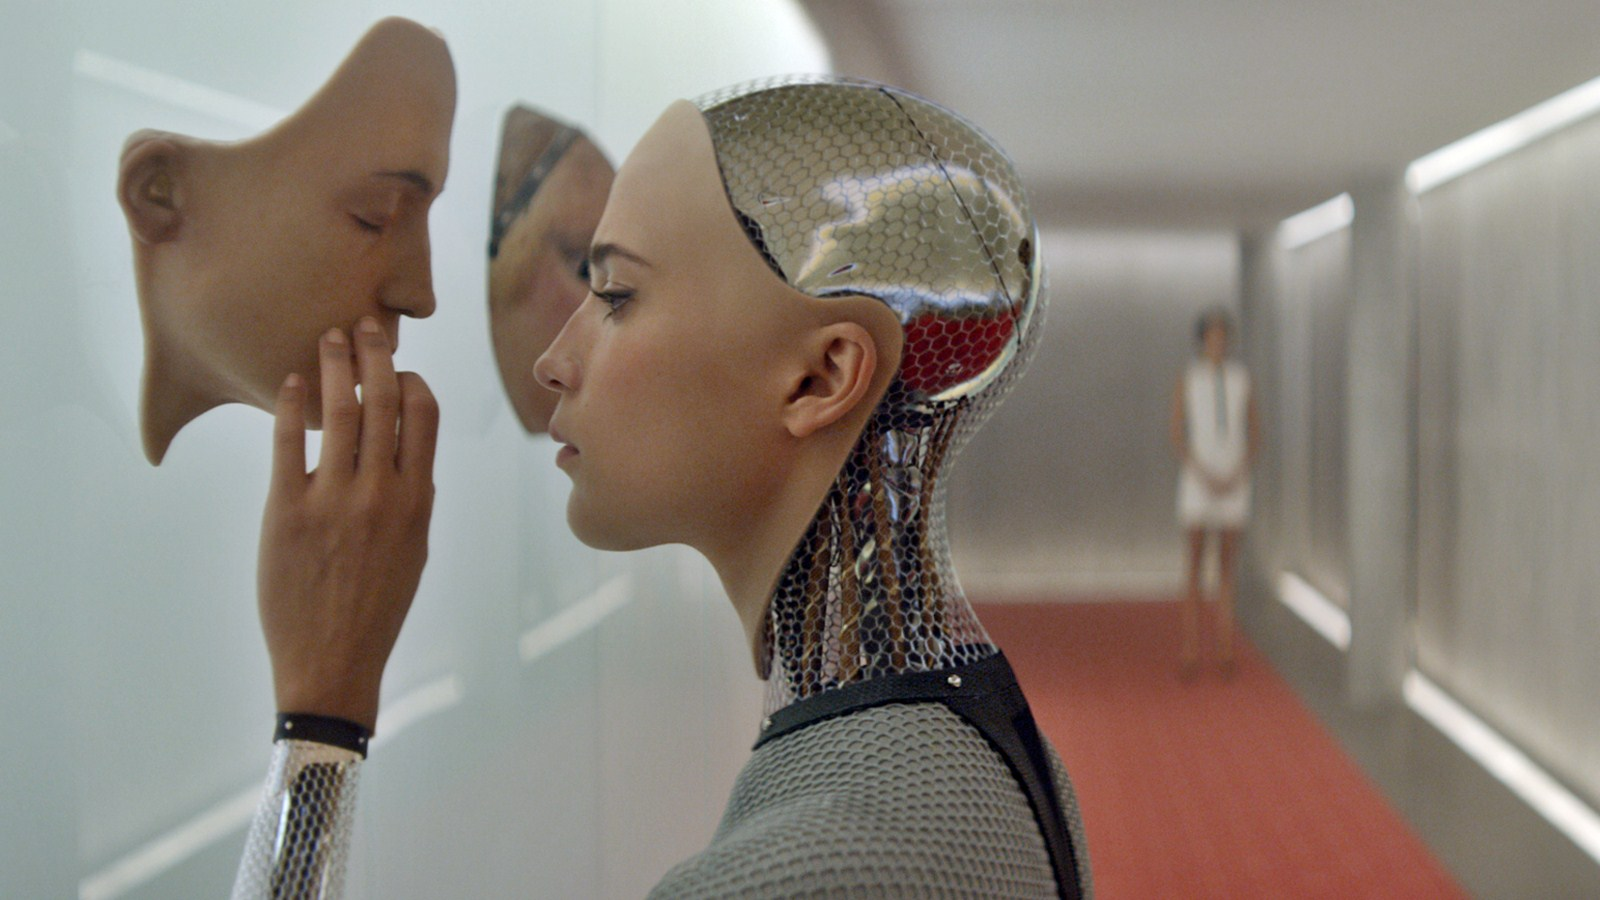 AI robots are sexist and racist, experts warn